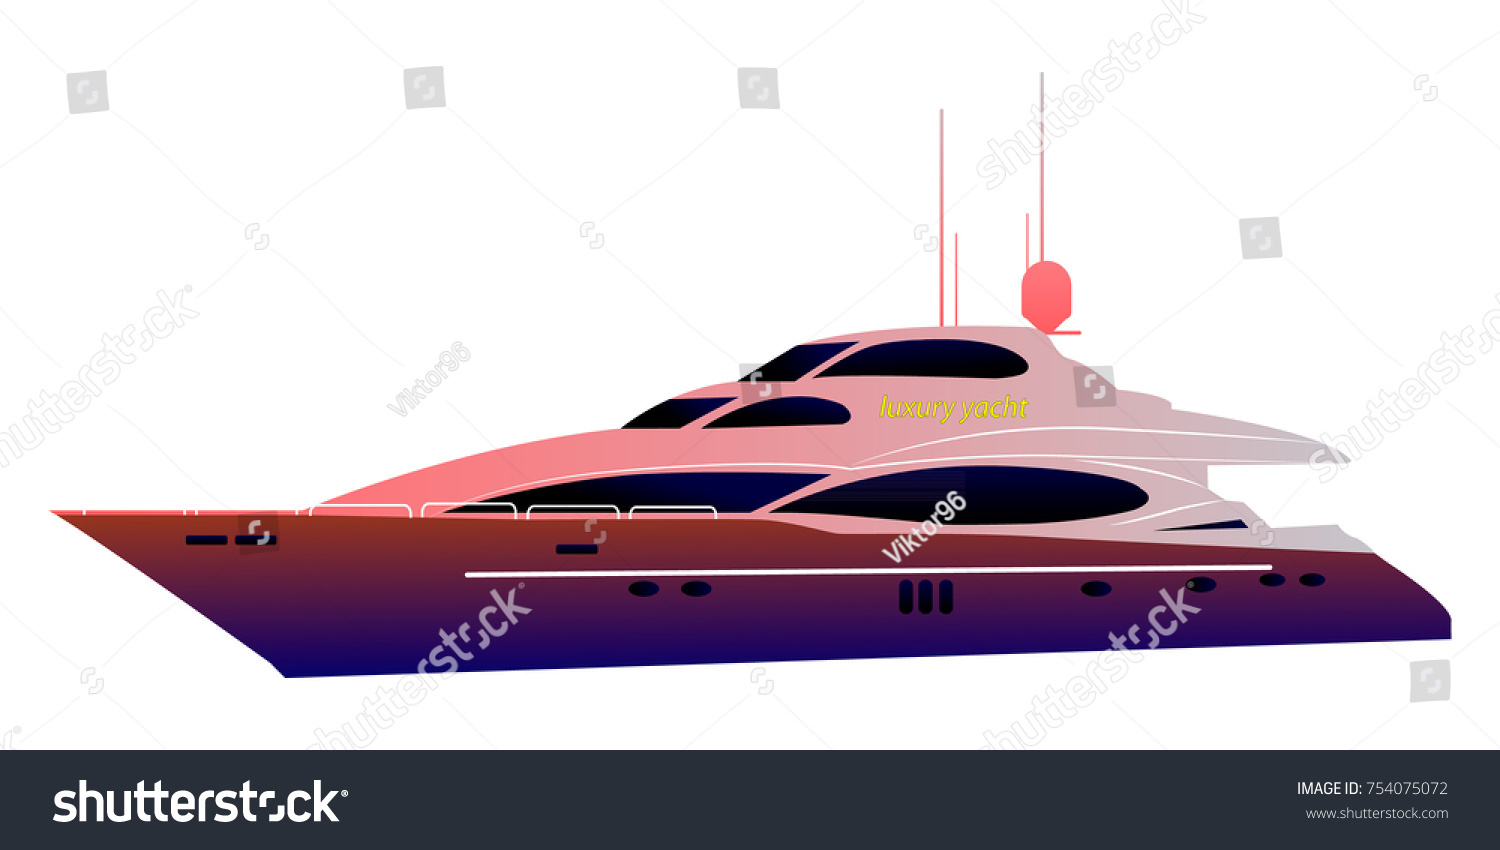 Motor Boat Sail Boat Side View Stock Vector Shutterstock - Cruise ship speed